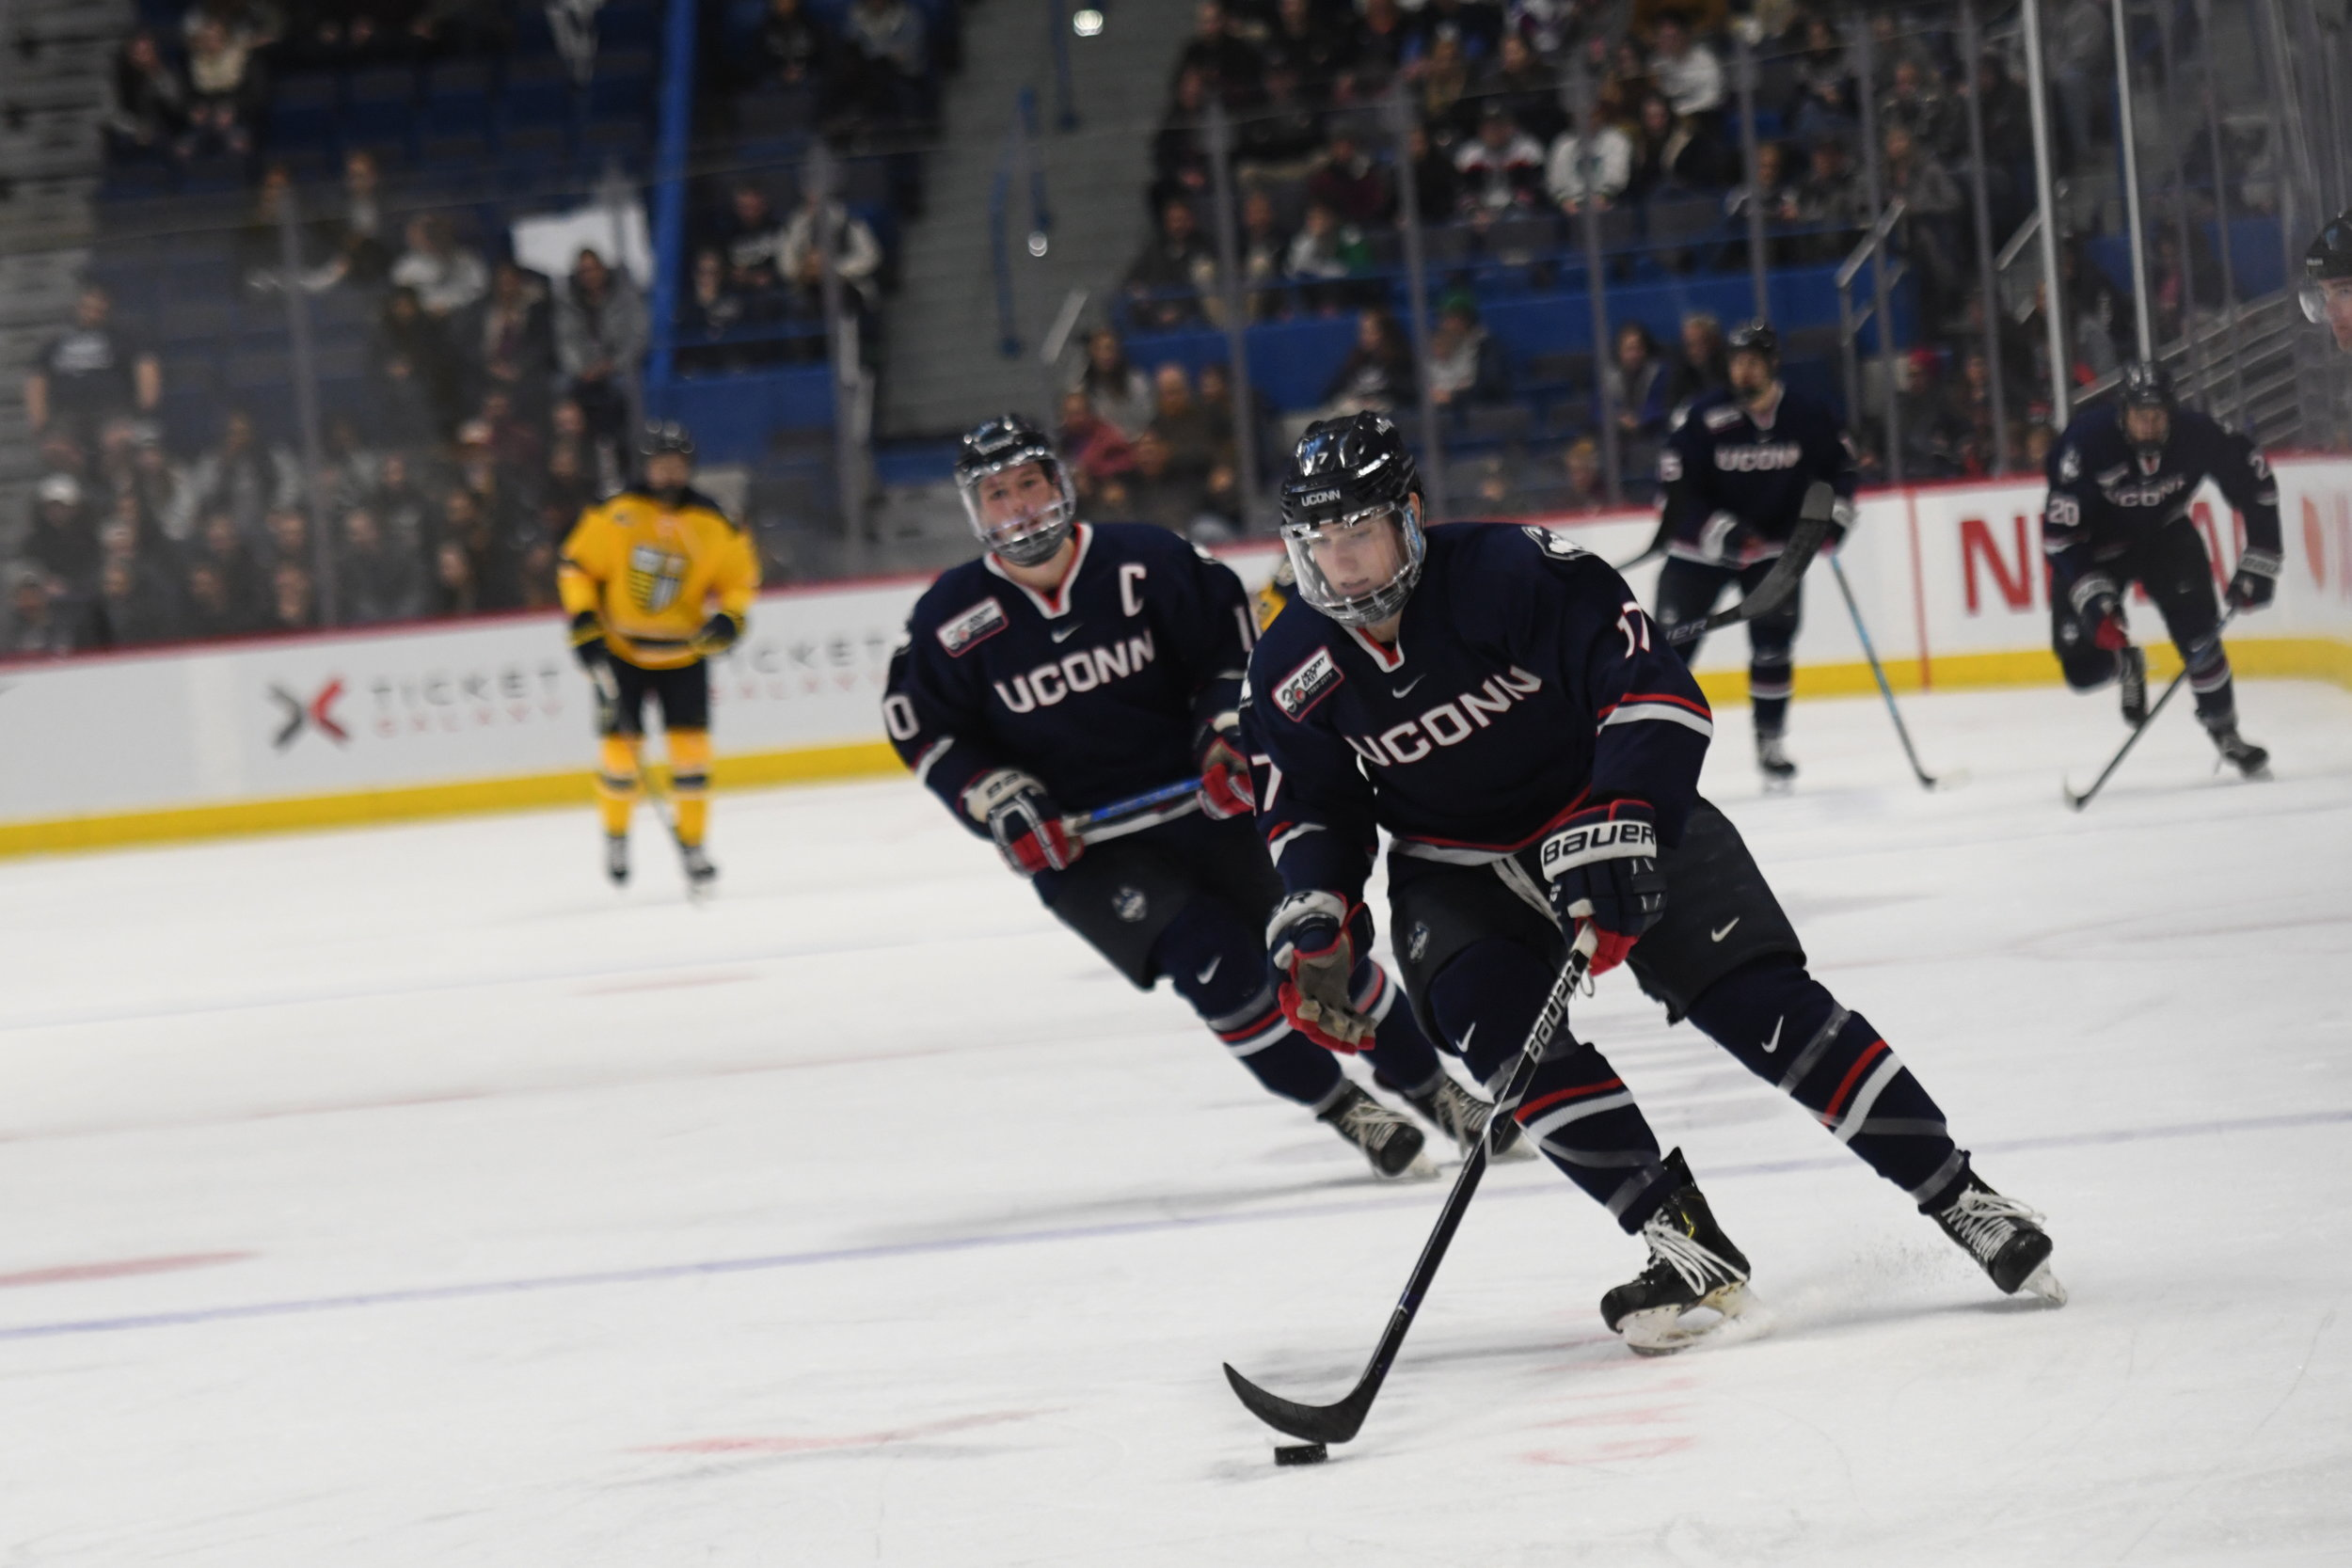 The UConn Men's Hockey Team shut out Merrimack College 5-0 in front of a record 8200 fans Saturday evening in the XL Center. The stands were full of immense energy as the Huskies brought their A game. (Photo by Kevin Lindstrom/The Daily Campus)